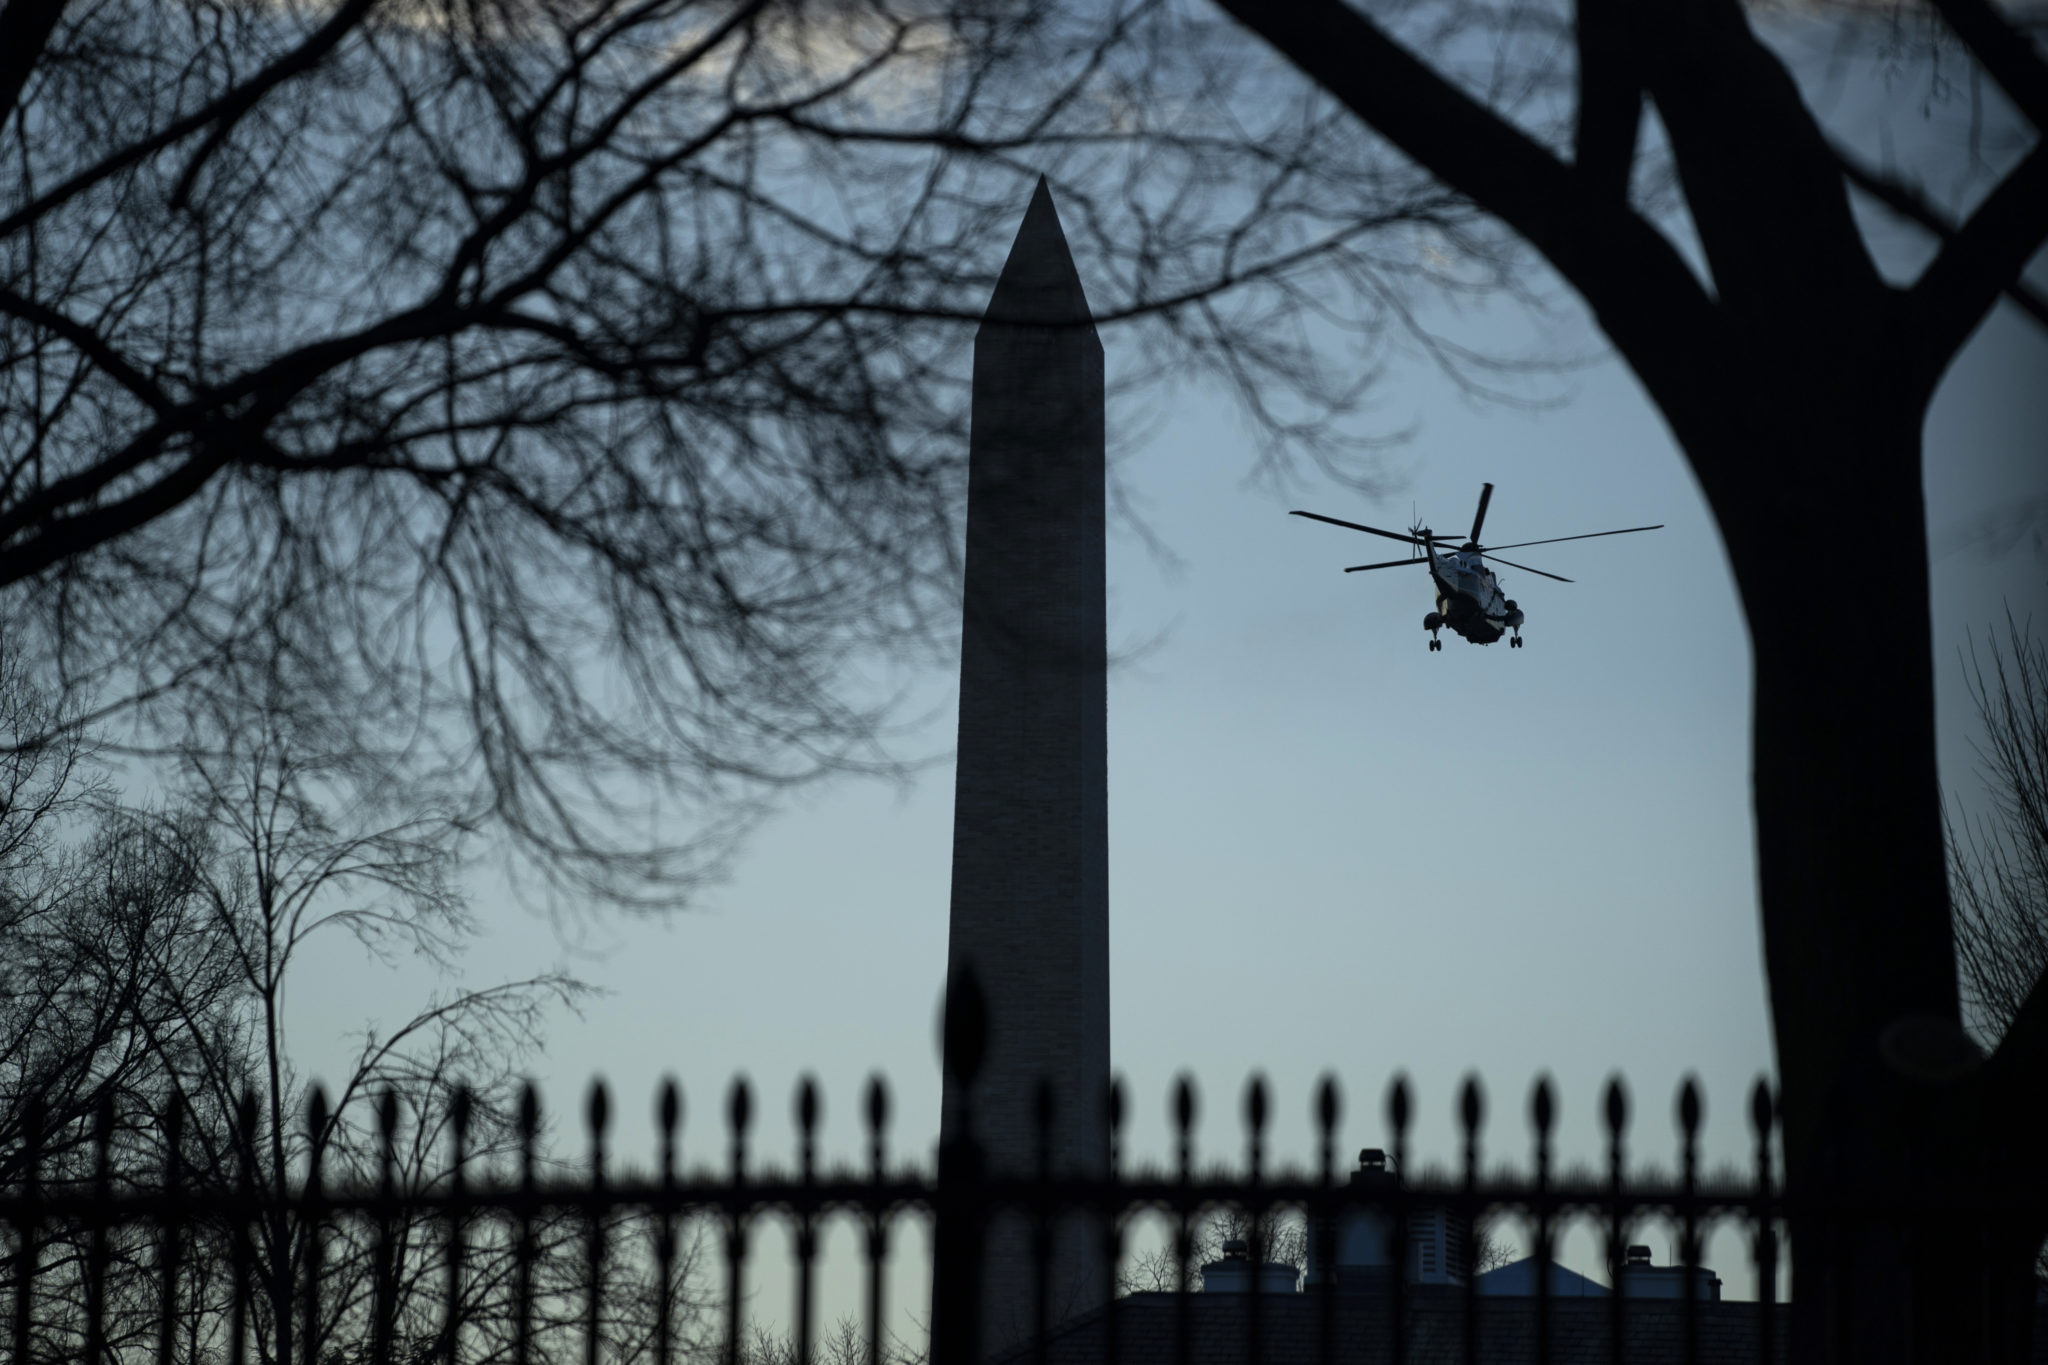 Donald Trump leaves the White House in a helicopter